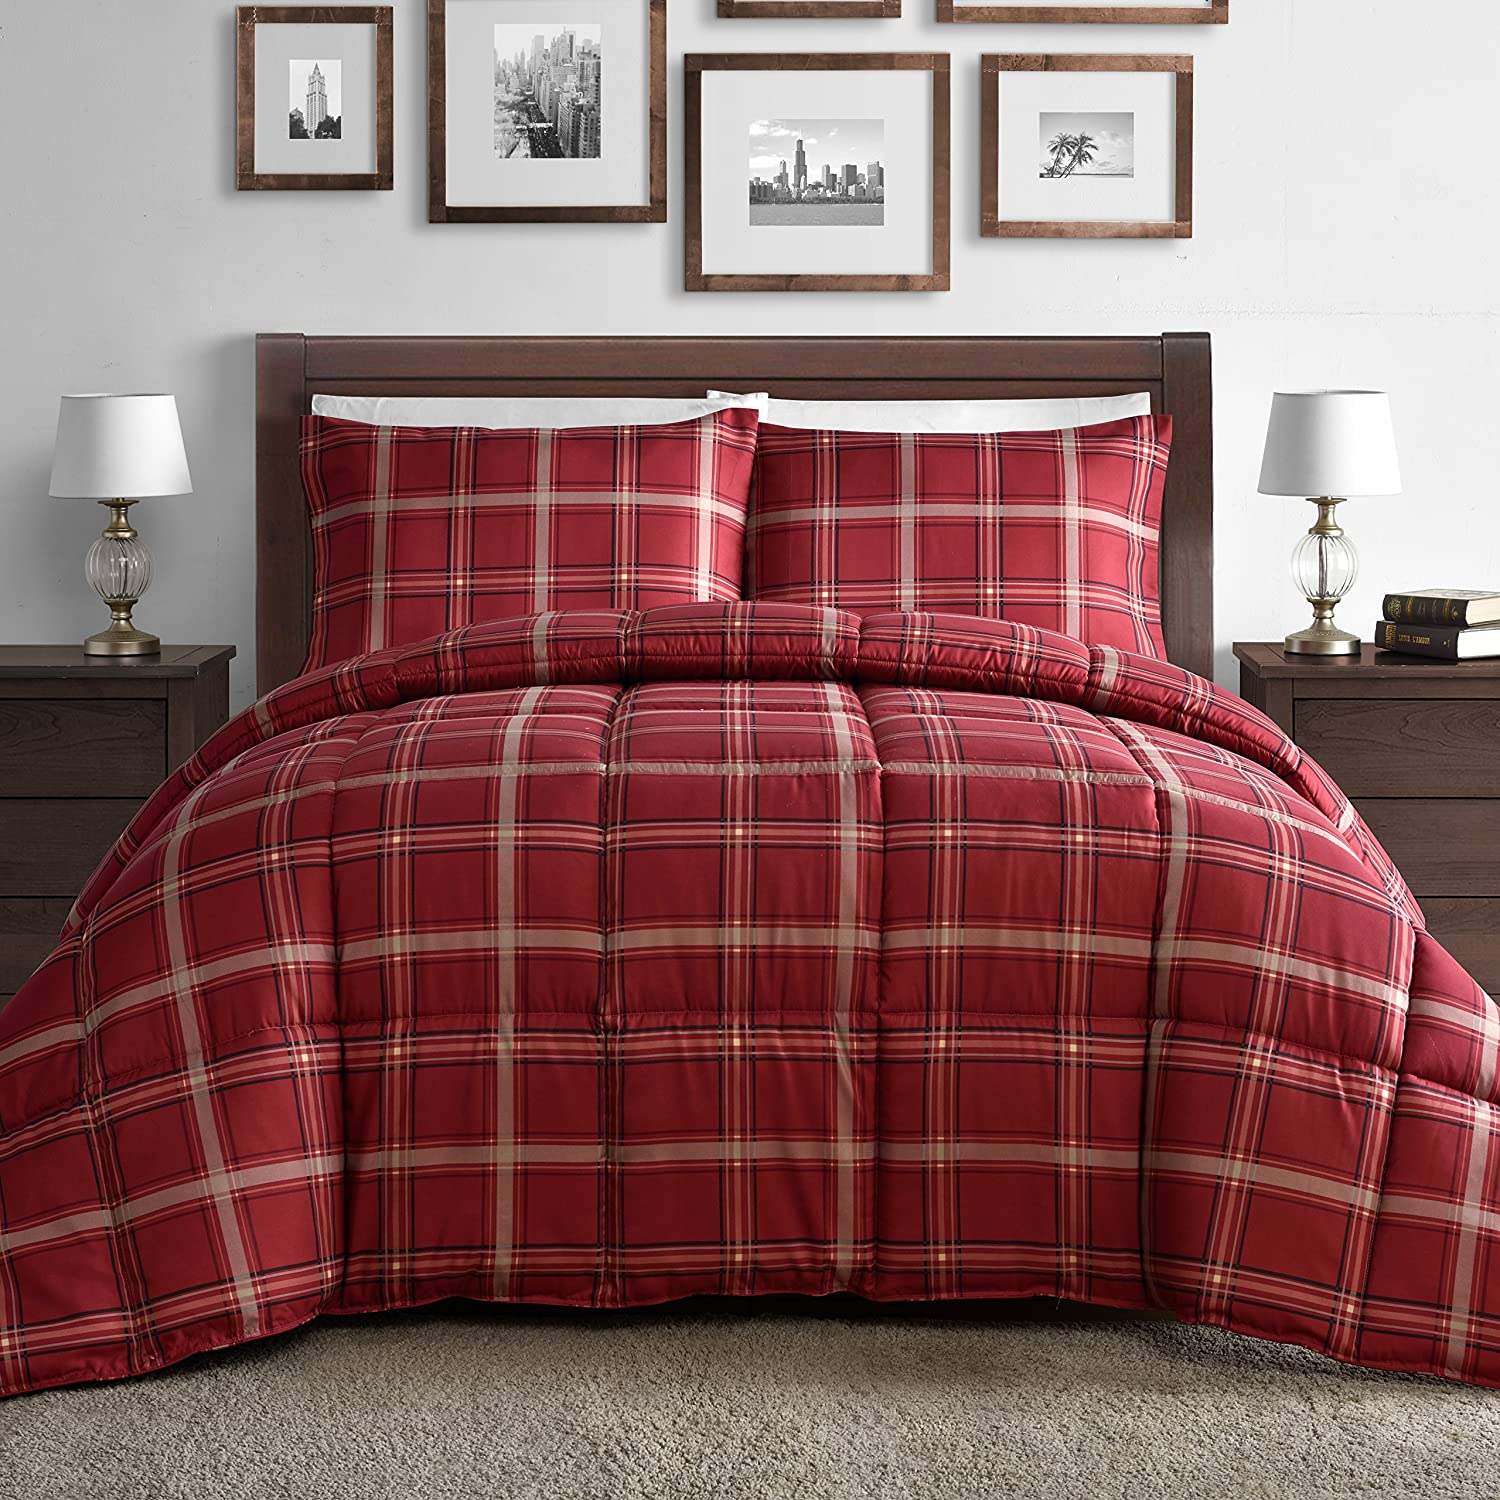 Comfy Bedding Clear Out Sale Ease Bedding With Style